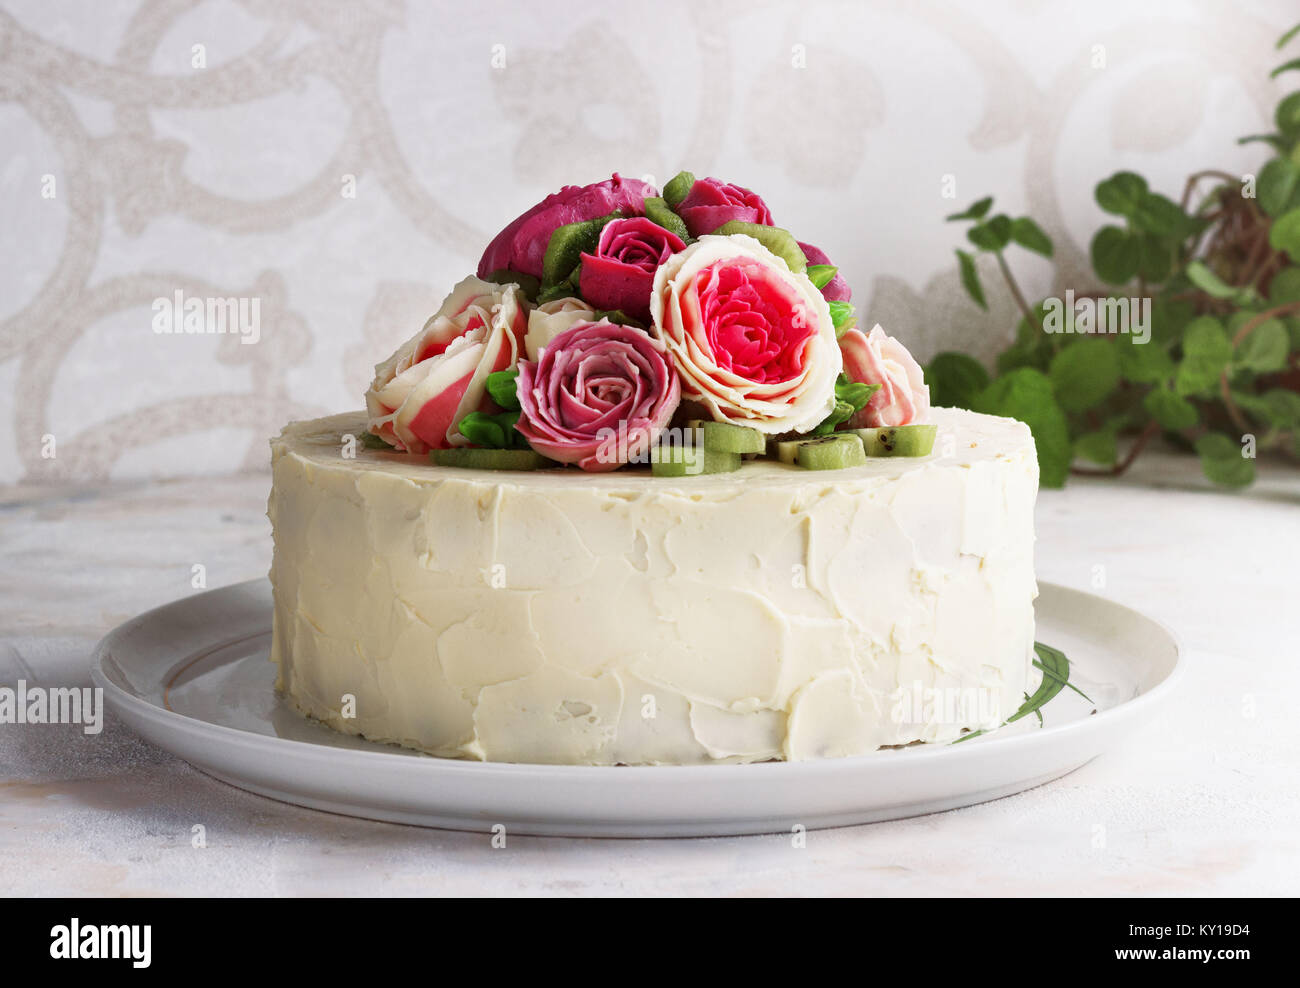 Birthday cake with flowers rose on white background - Stock Image